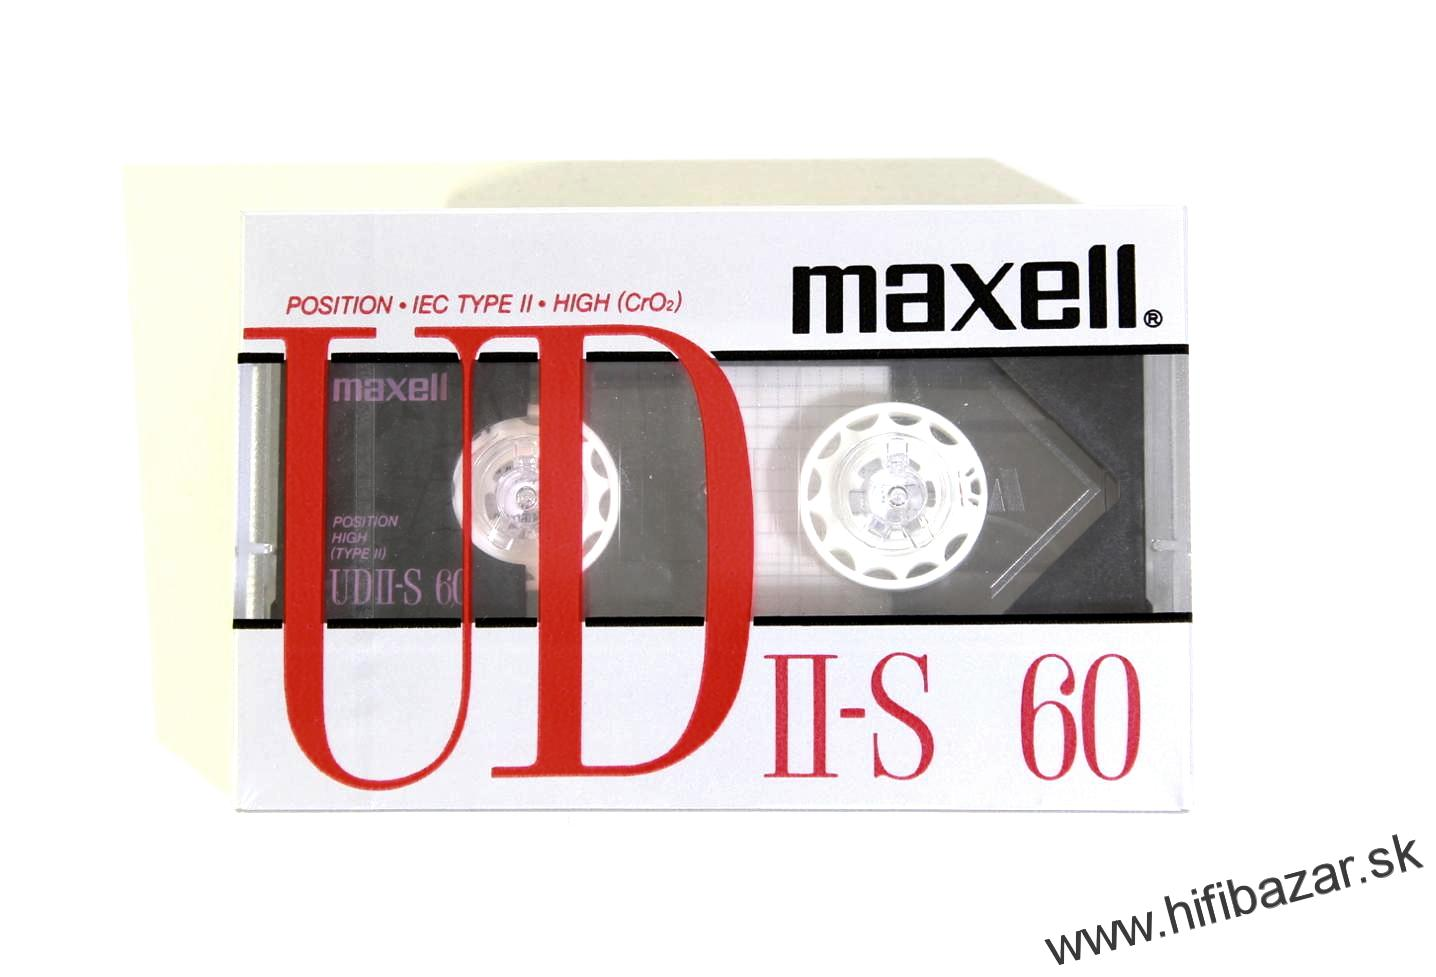 MAXELL UDII-S60 Position Chrome